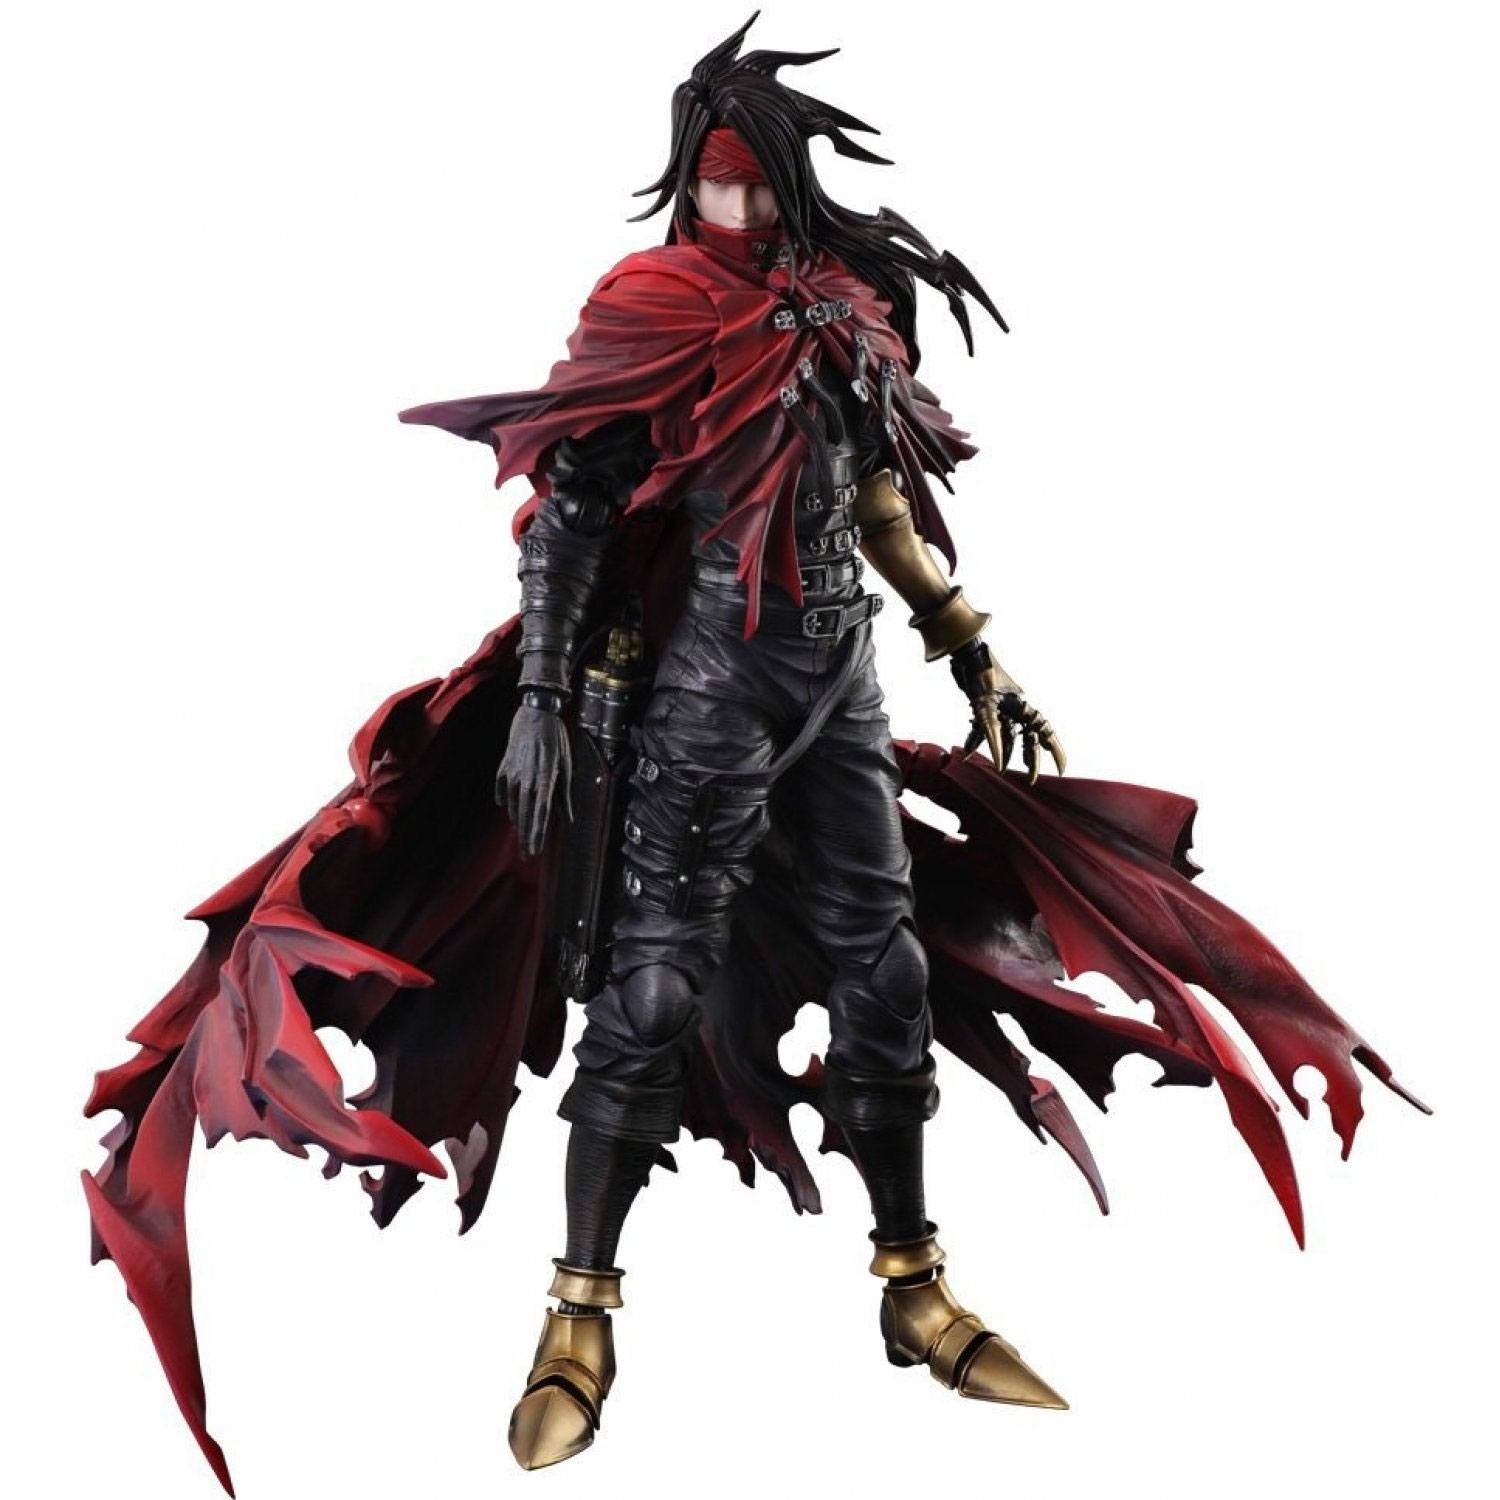 Dirge of Cerberus Final Fantasy VII Play Arts Kai Action Figure Vincent Valentine 27 cm